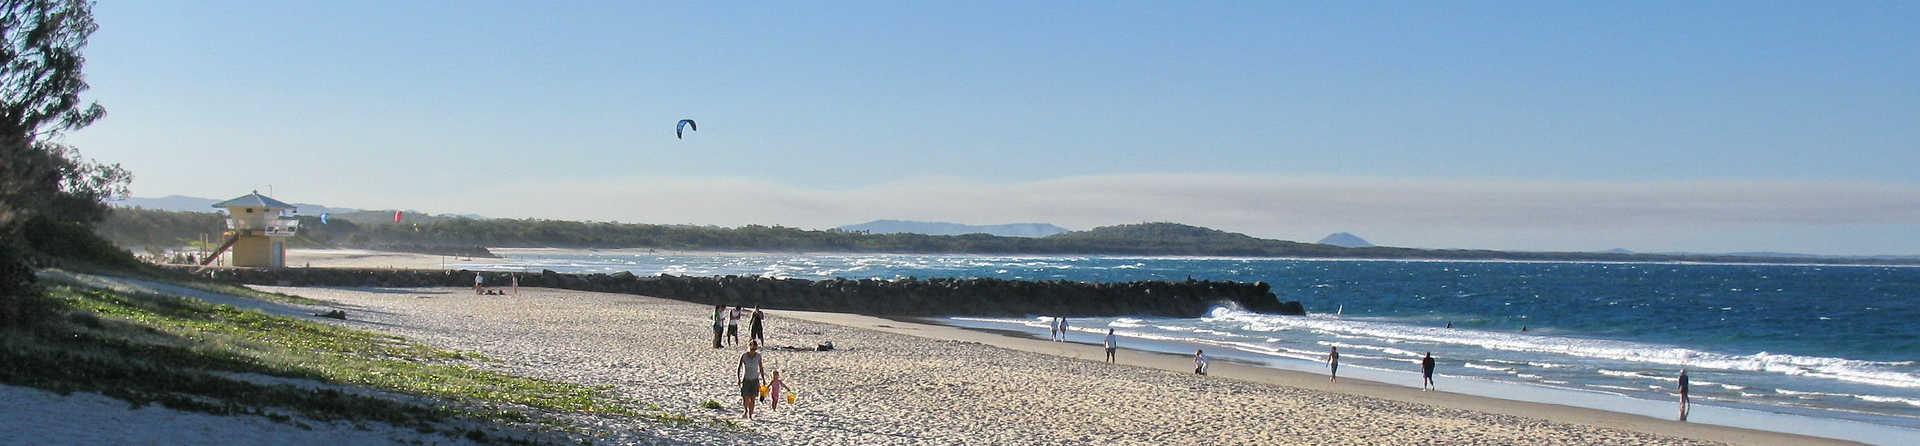 How many days do you need in Noosa?